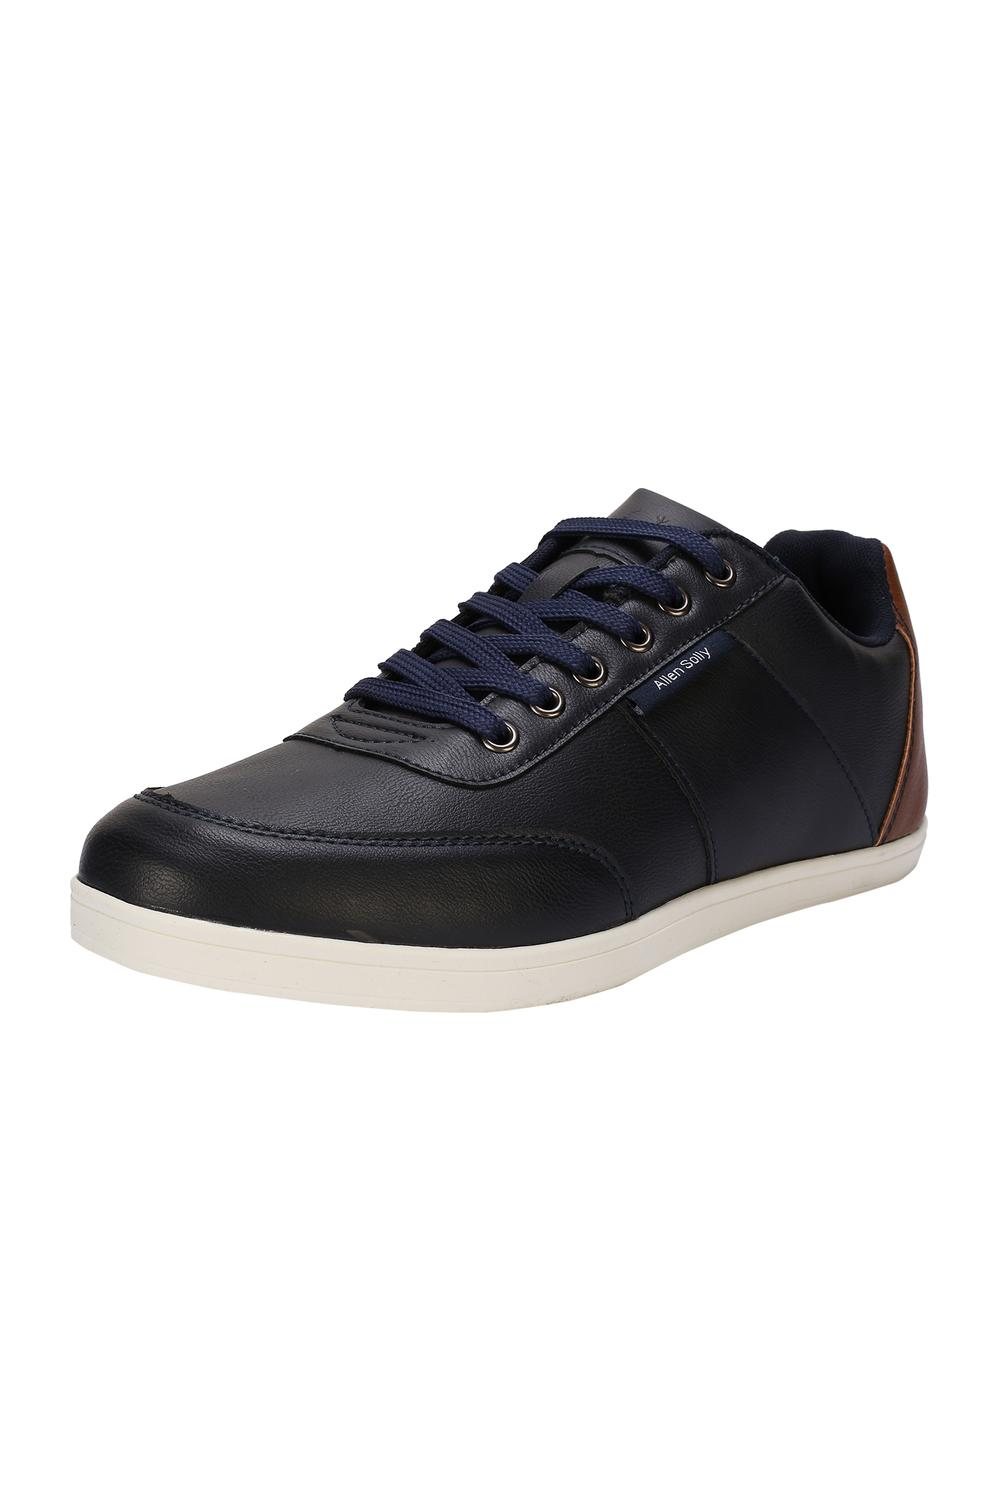 179194099f Allen Solly Footwear, Allen Solly Azure Casual Shoes for Men at Allensolly .com